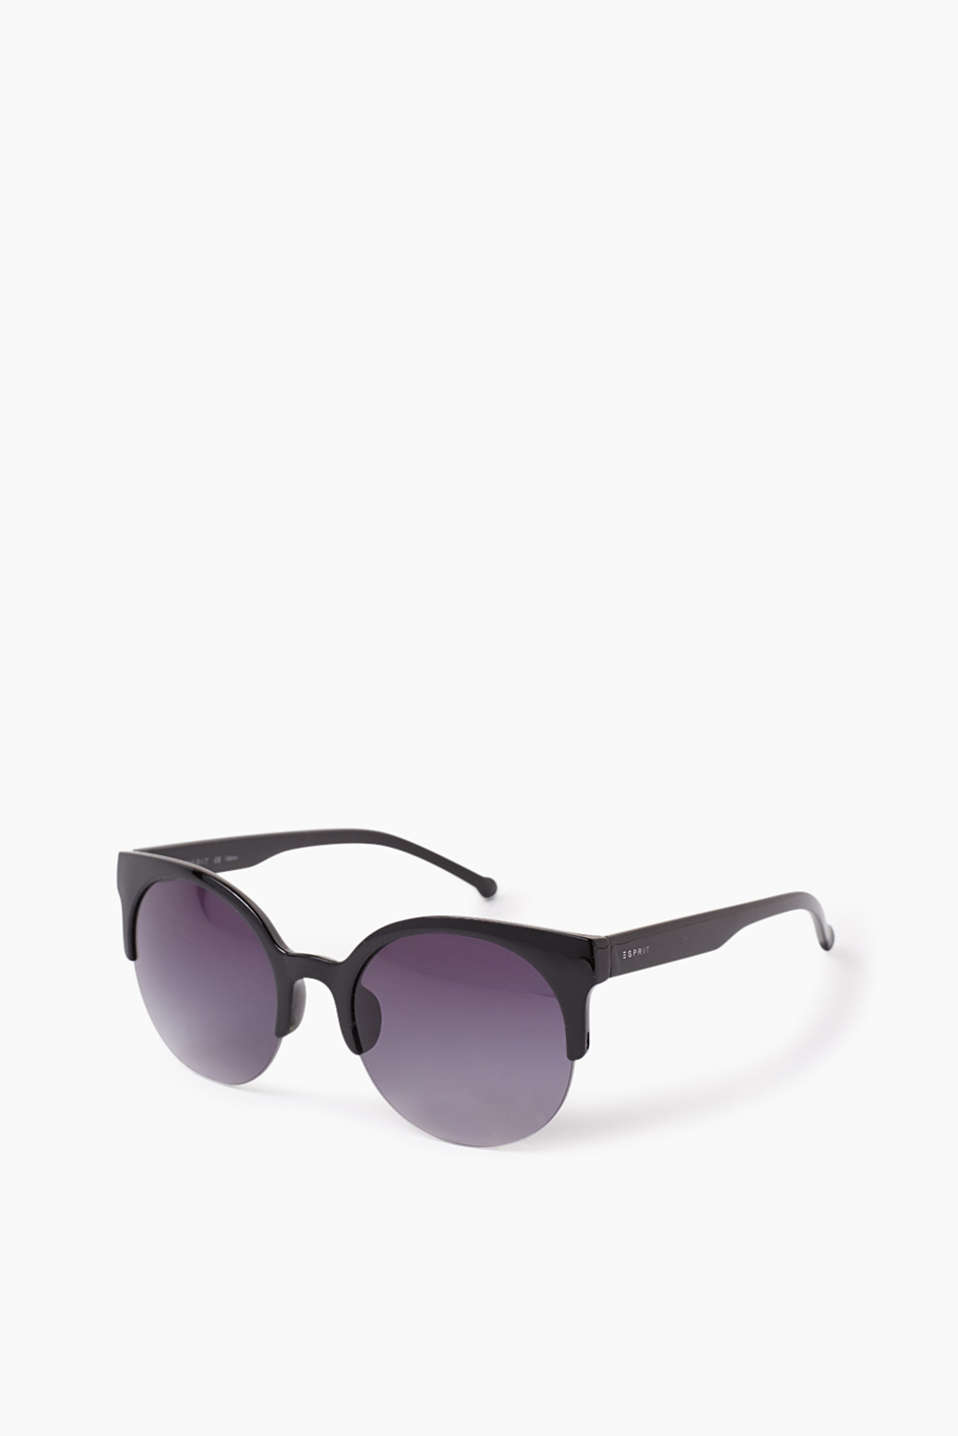 A fashion piece: Trendy sunglasses in an extravagant design, made of plastic